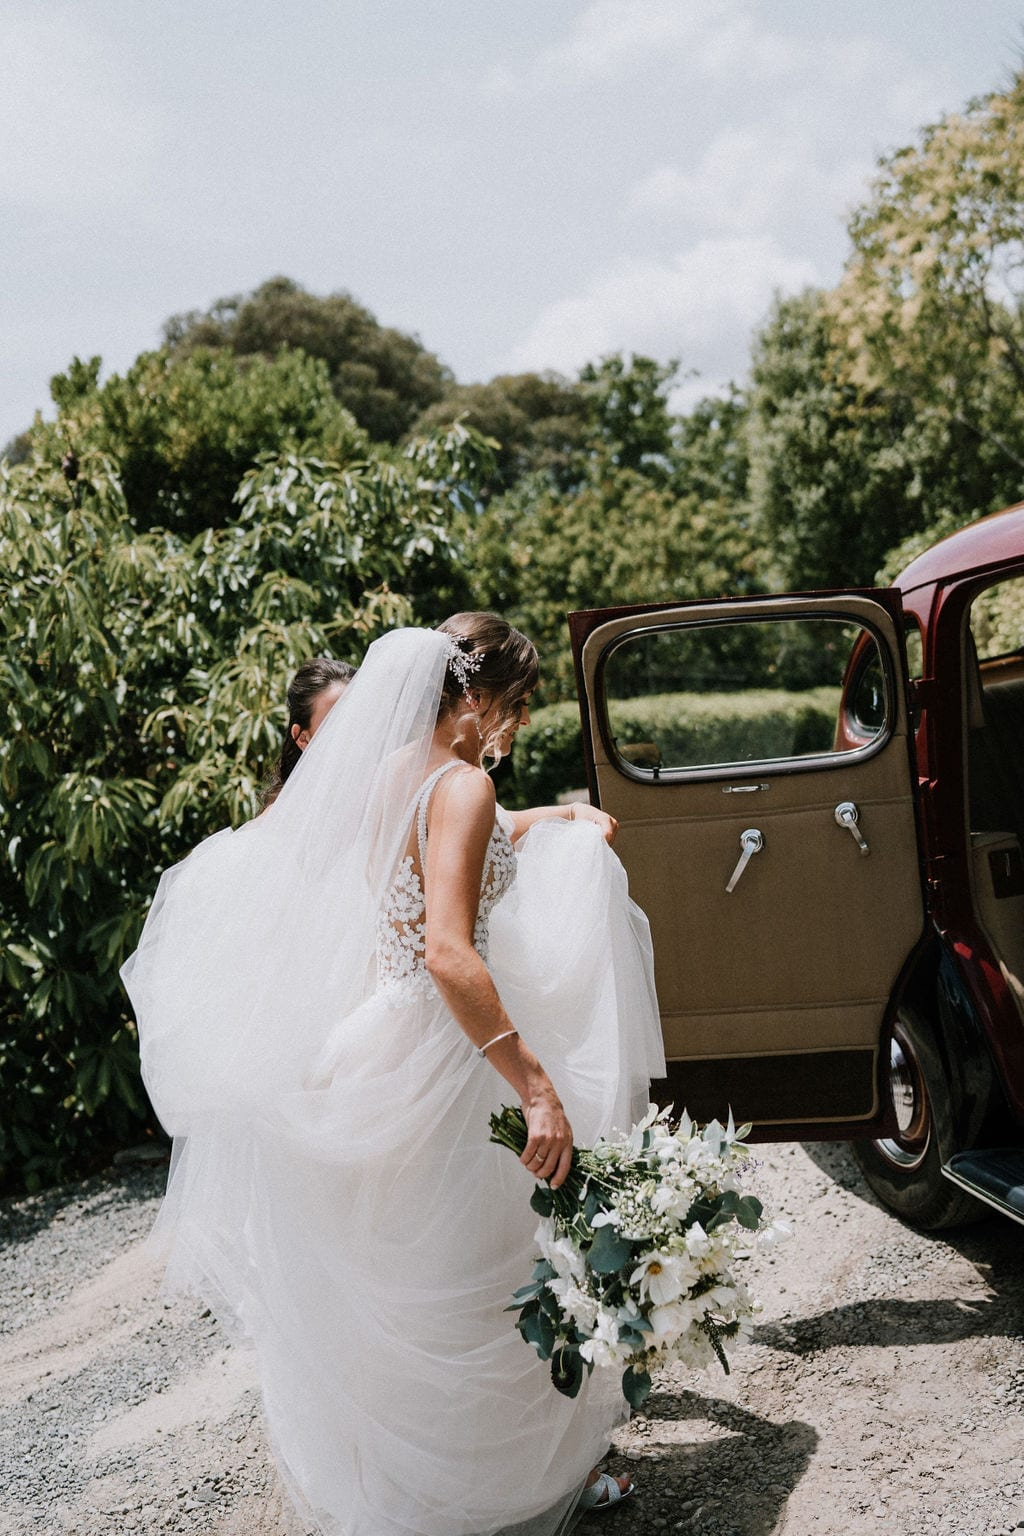 Vinka Design Features Real Weddings - bride in custom version of the Isabelle gown from our Heart of Havana collection. A fitted nude based bodice with delicate 3D beaded flowers with hand beaded trim and a skirt of dreamy tulle. Bride getting into wedding car